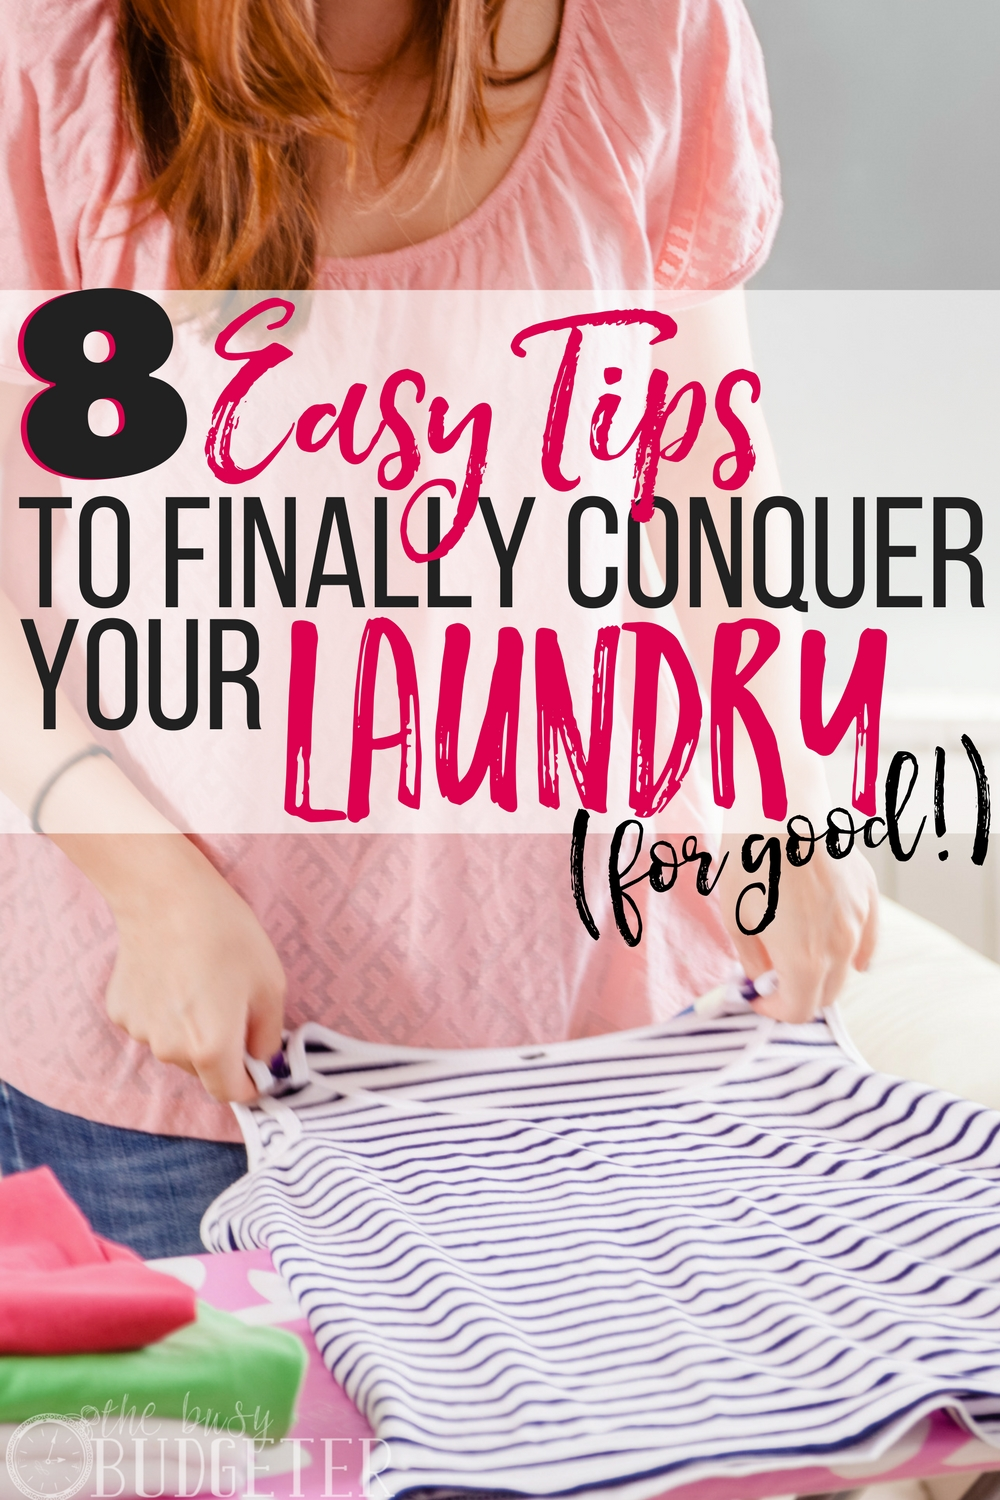 I totally hated doing laundry, but these laundry basics make the whole process so much easier! Laundry's part of my routine now and I never worry about falling behind!